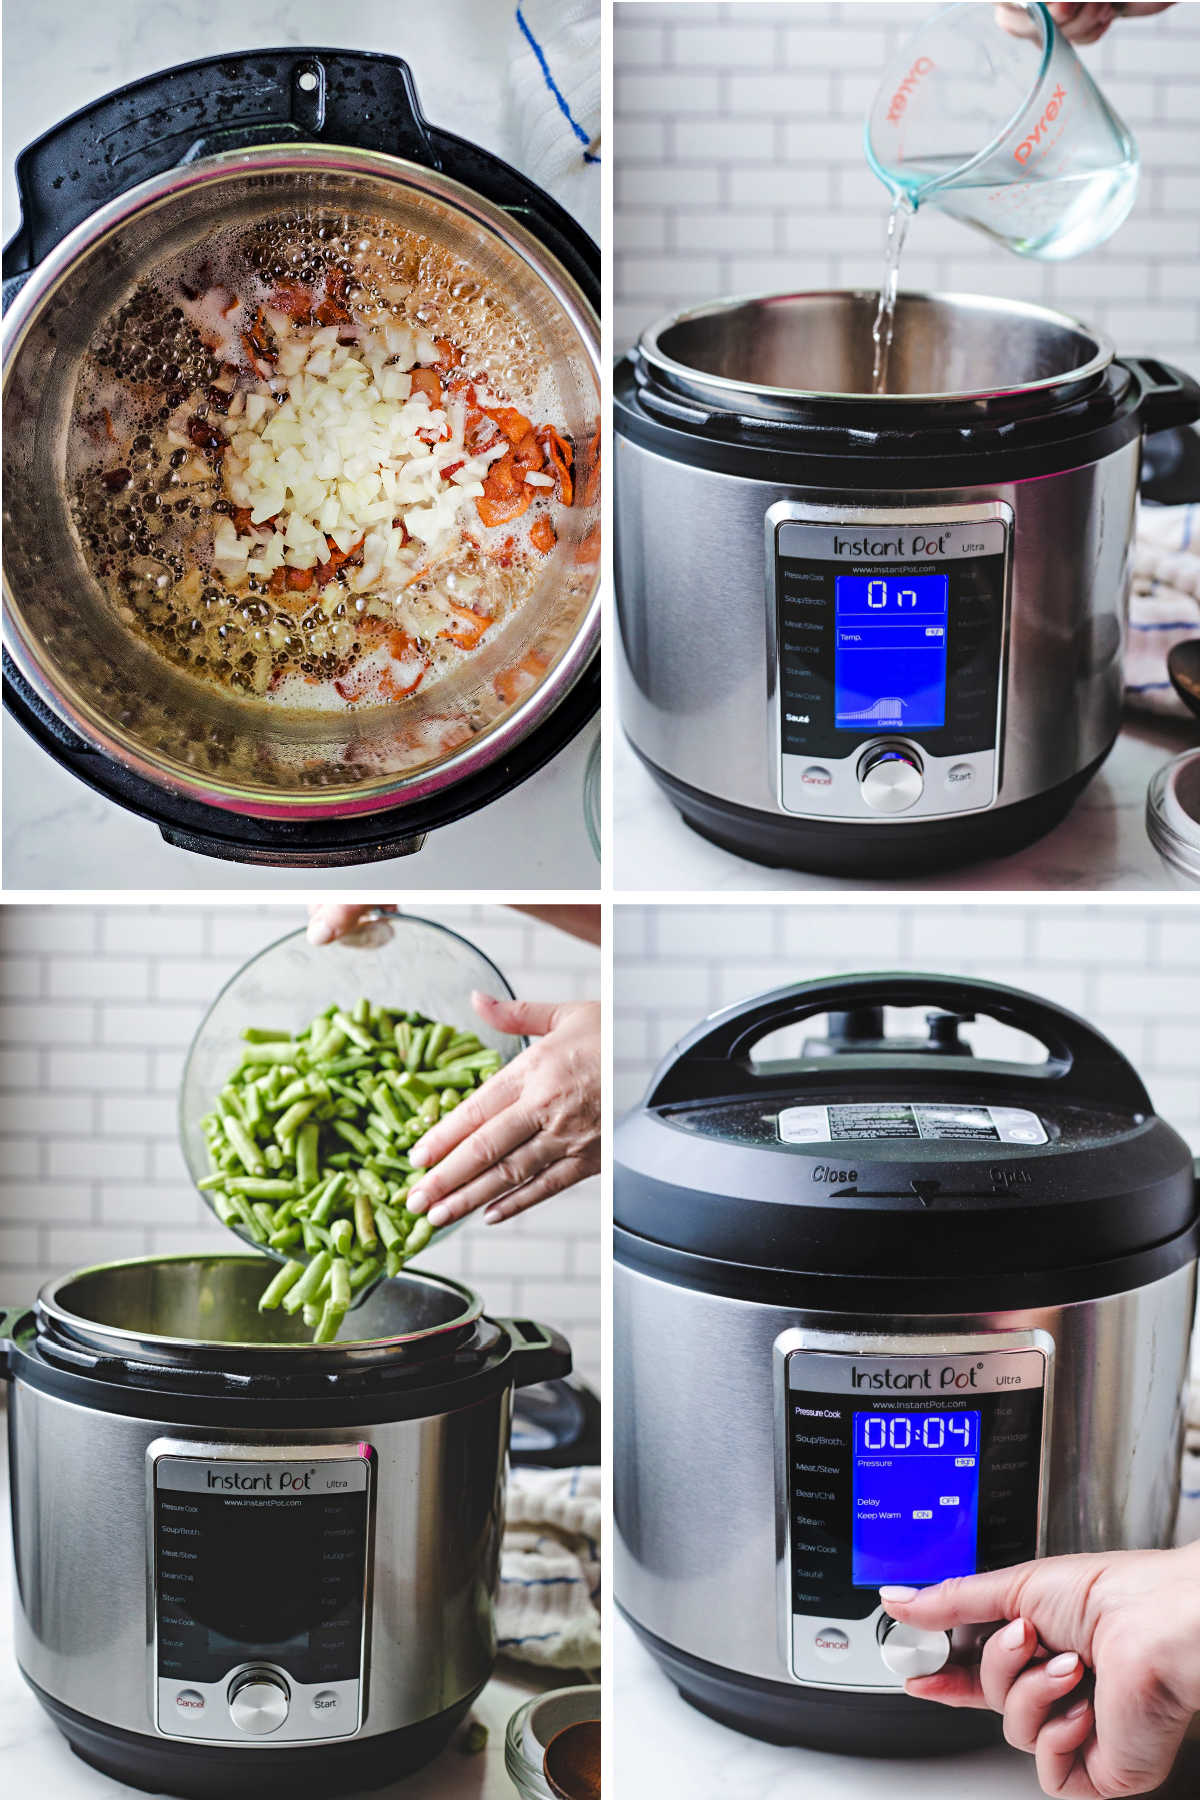 process steps for cooking instant pot green beans: saute bacon and onions; add water; add green beans; lock lid and set cook time.